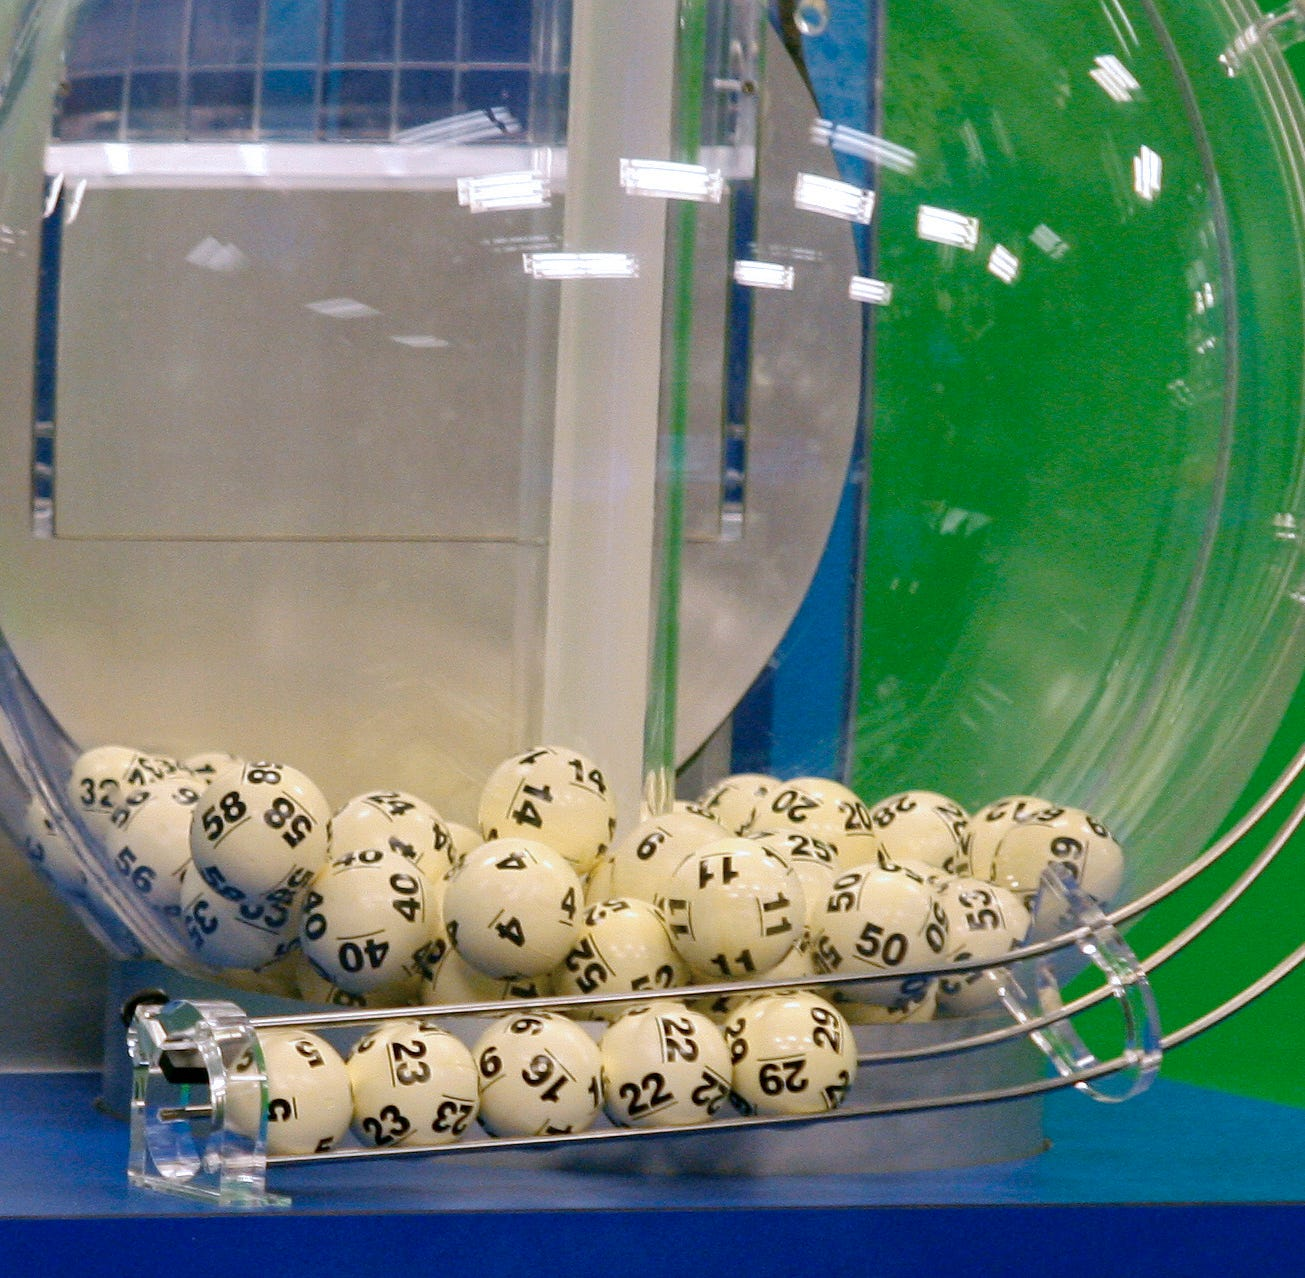 Powerball hits $750 million: What you need to know before Wednesday's drawing